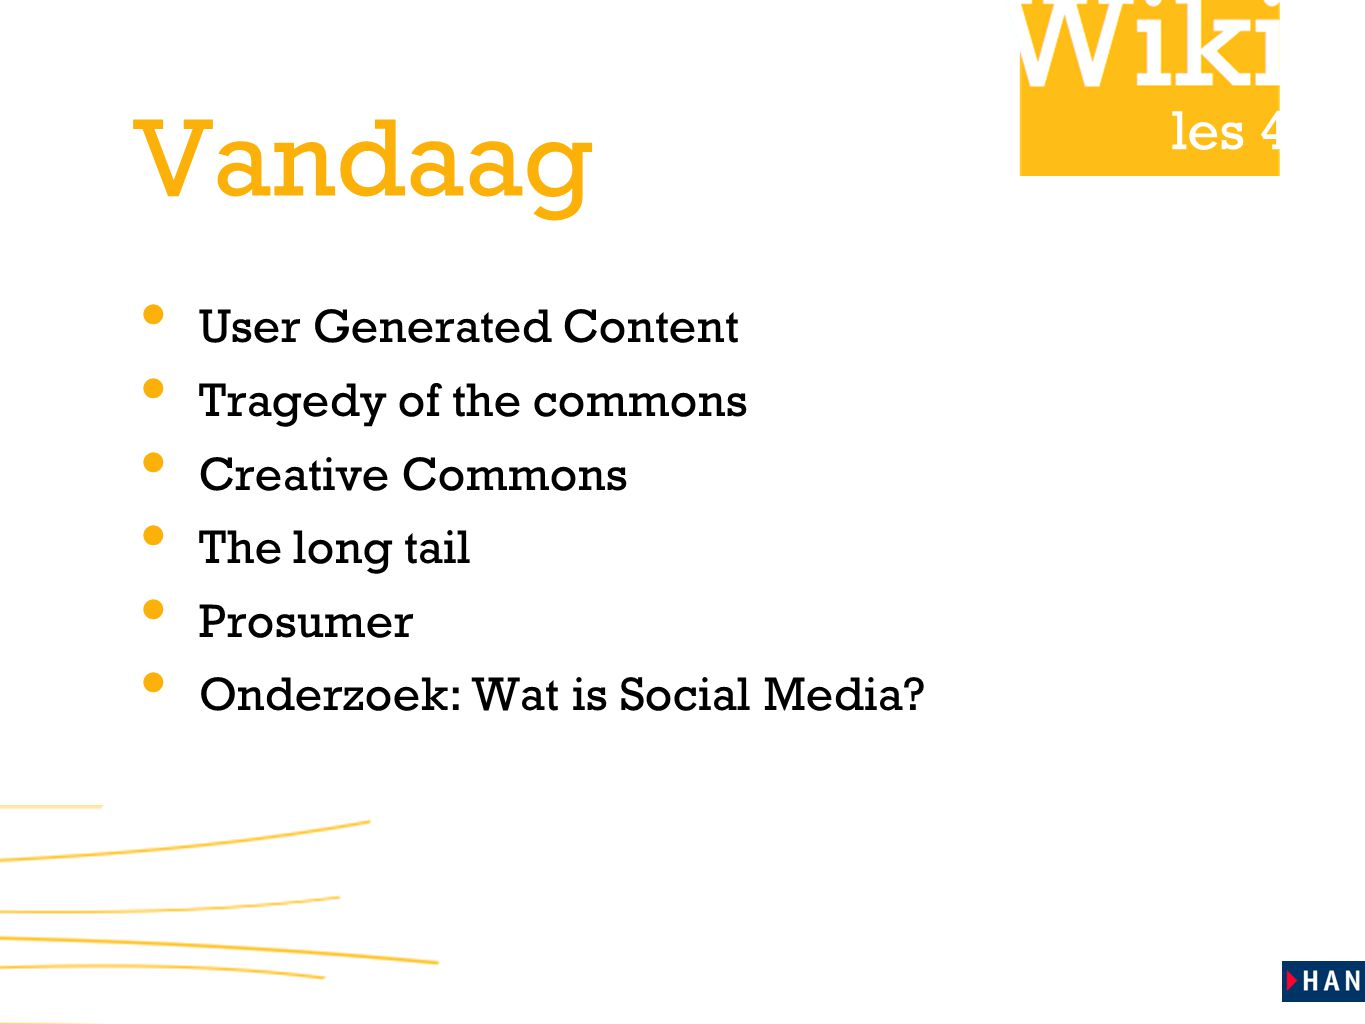 Vandaag User Generated Content Tragedy of the commons Creative Commons